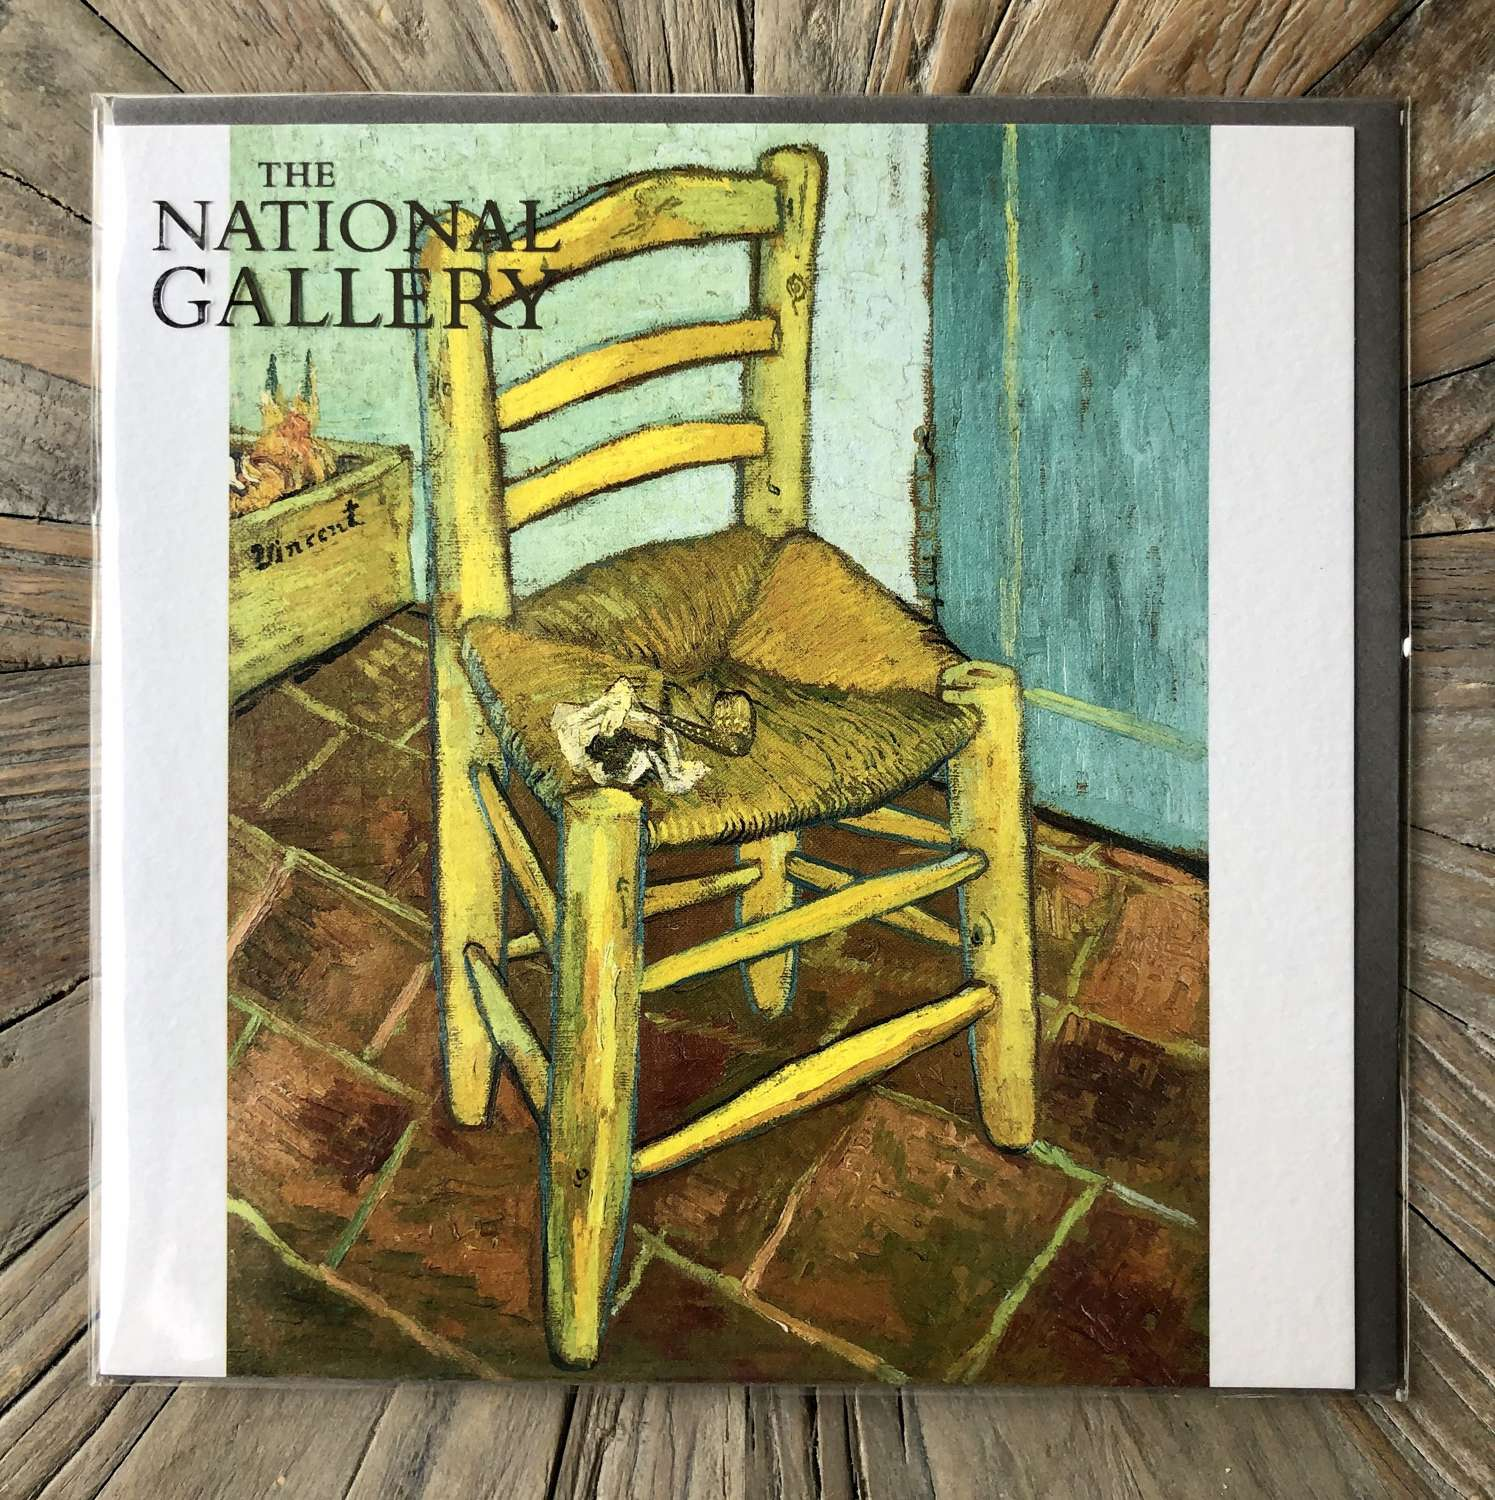 The National Gallery - Van Gogh's Chair.